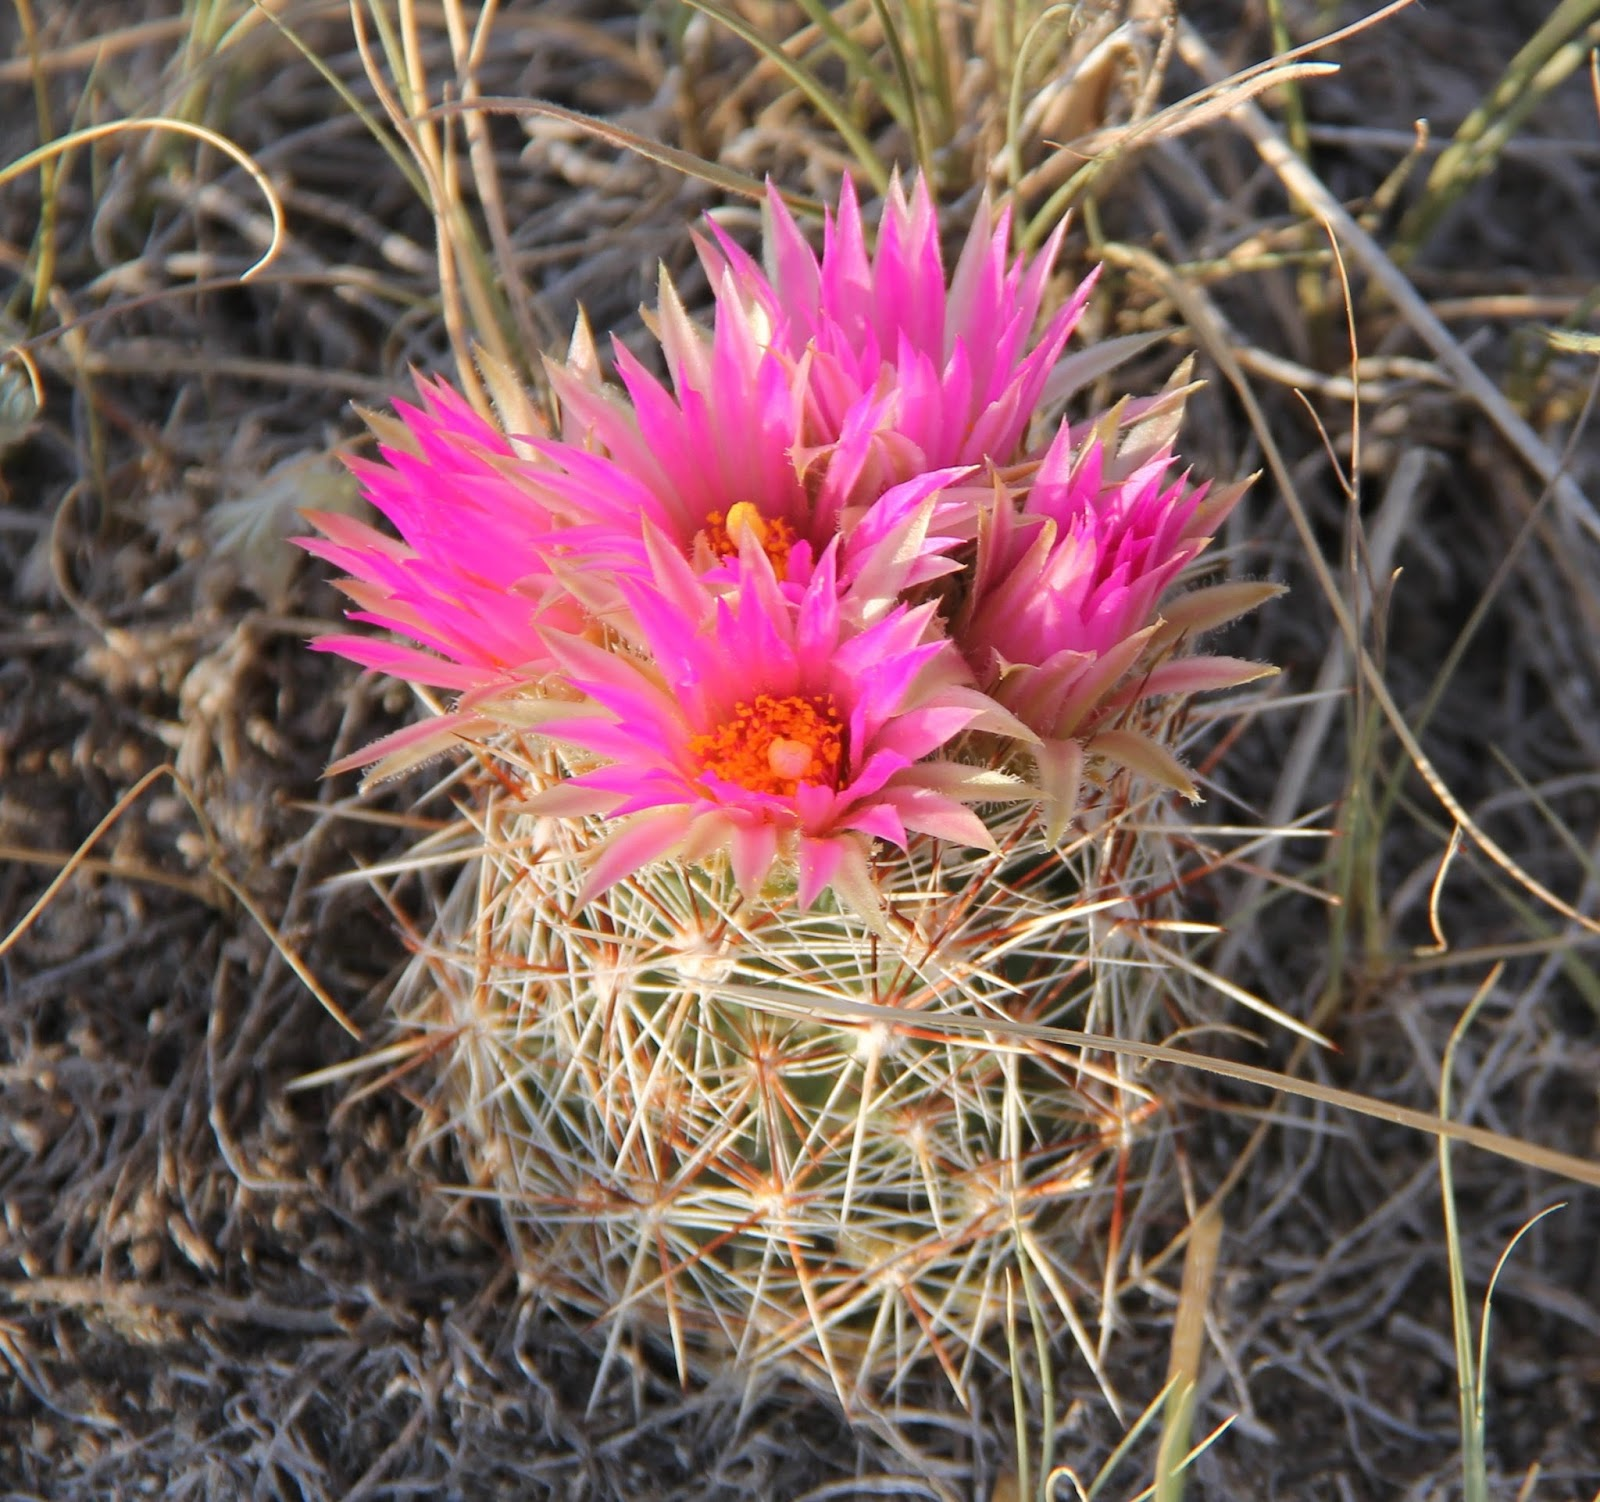 Viewing gallery for pink cactus flower